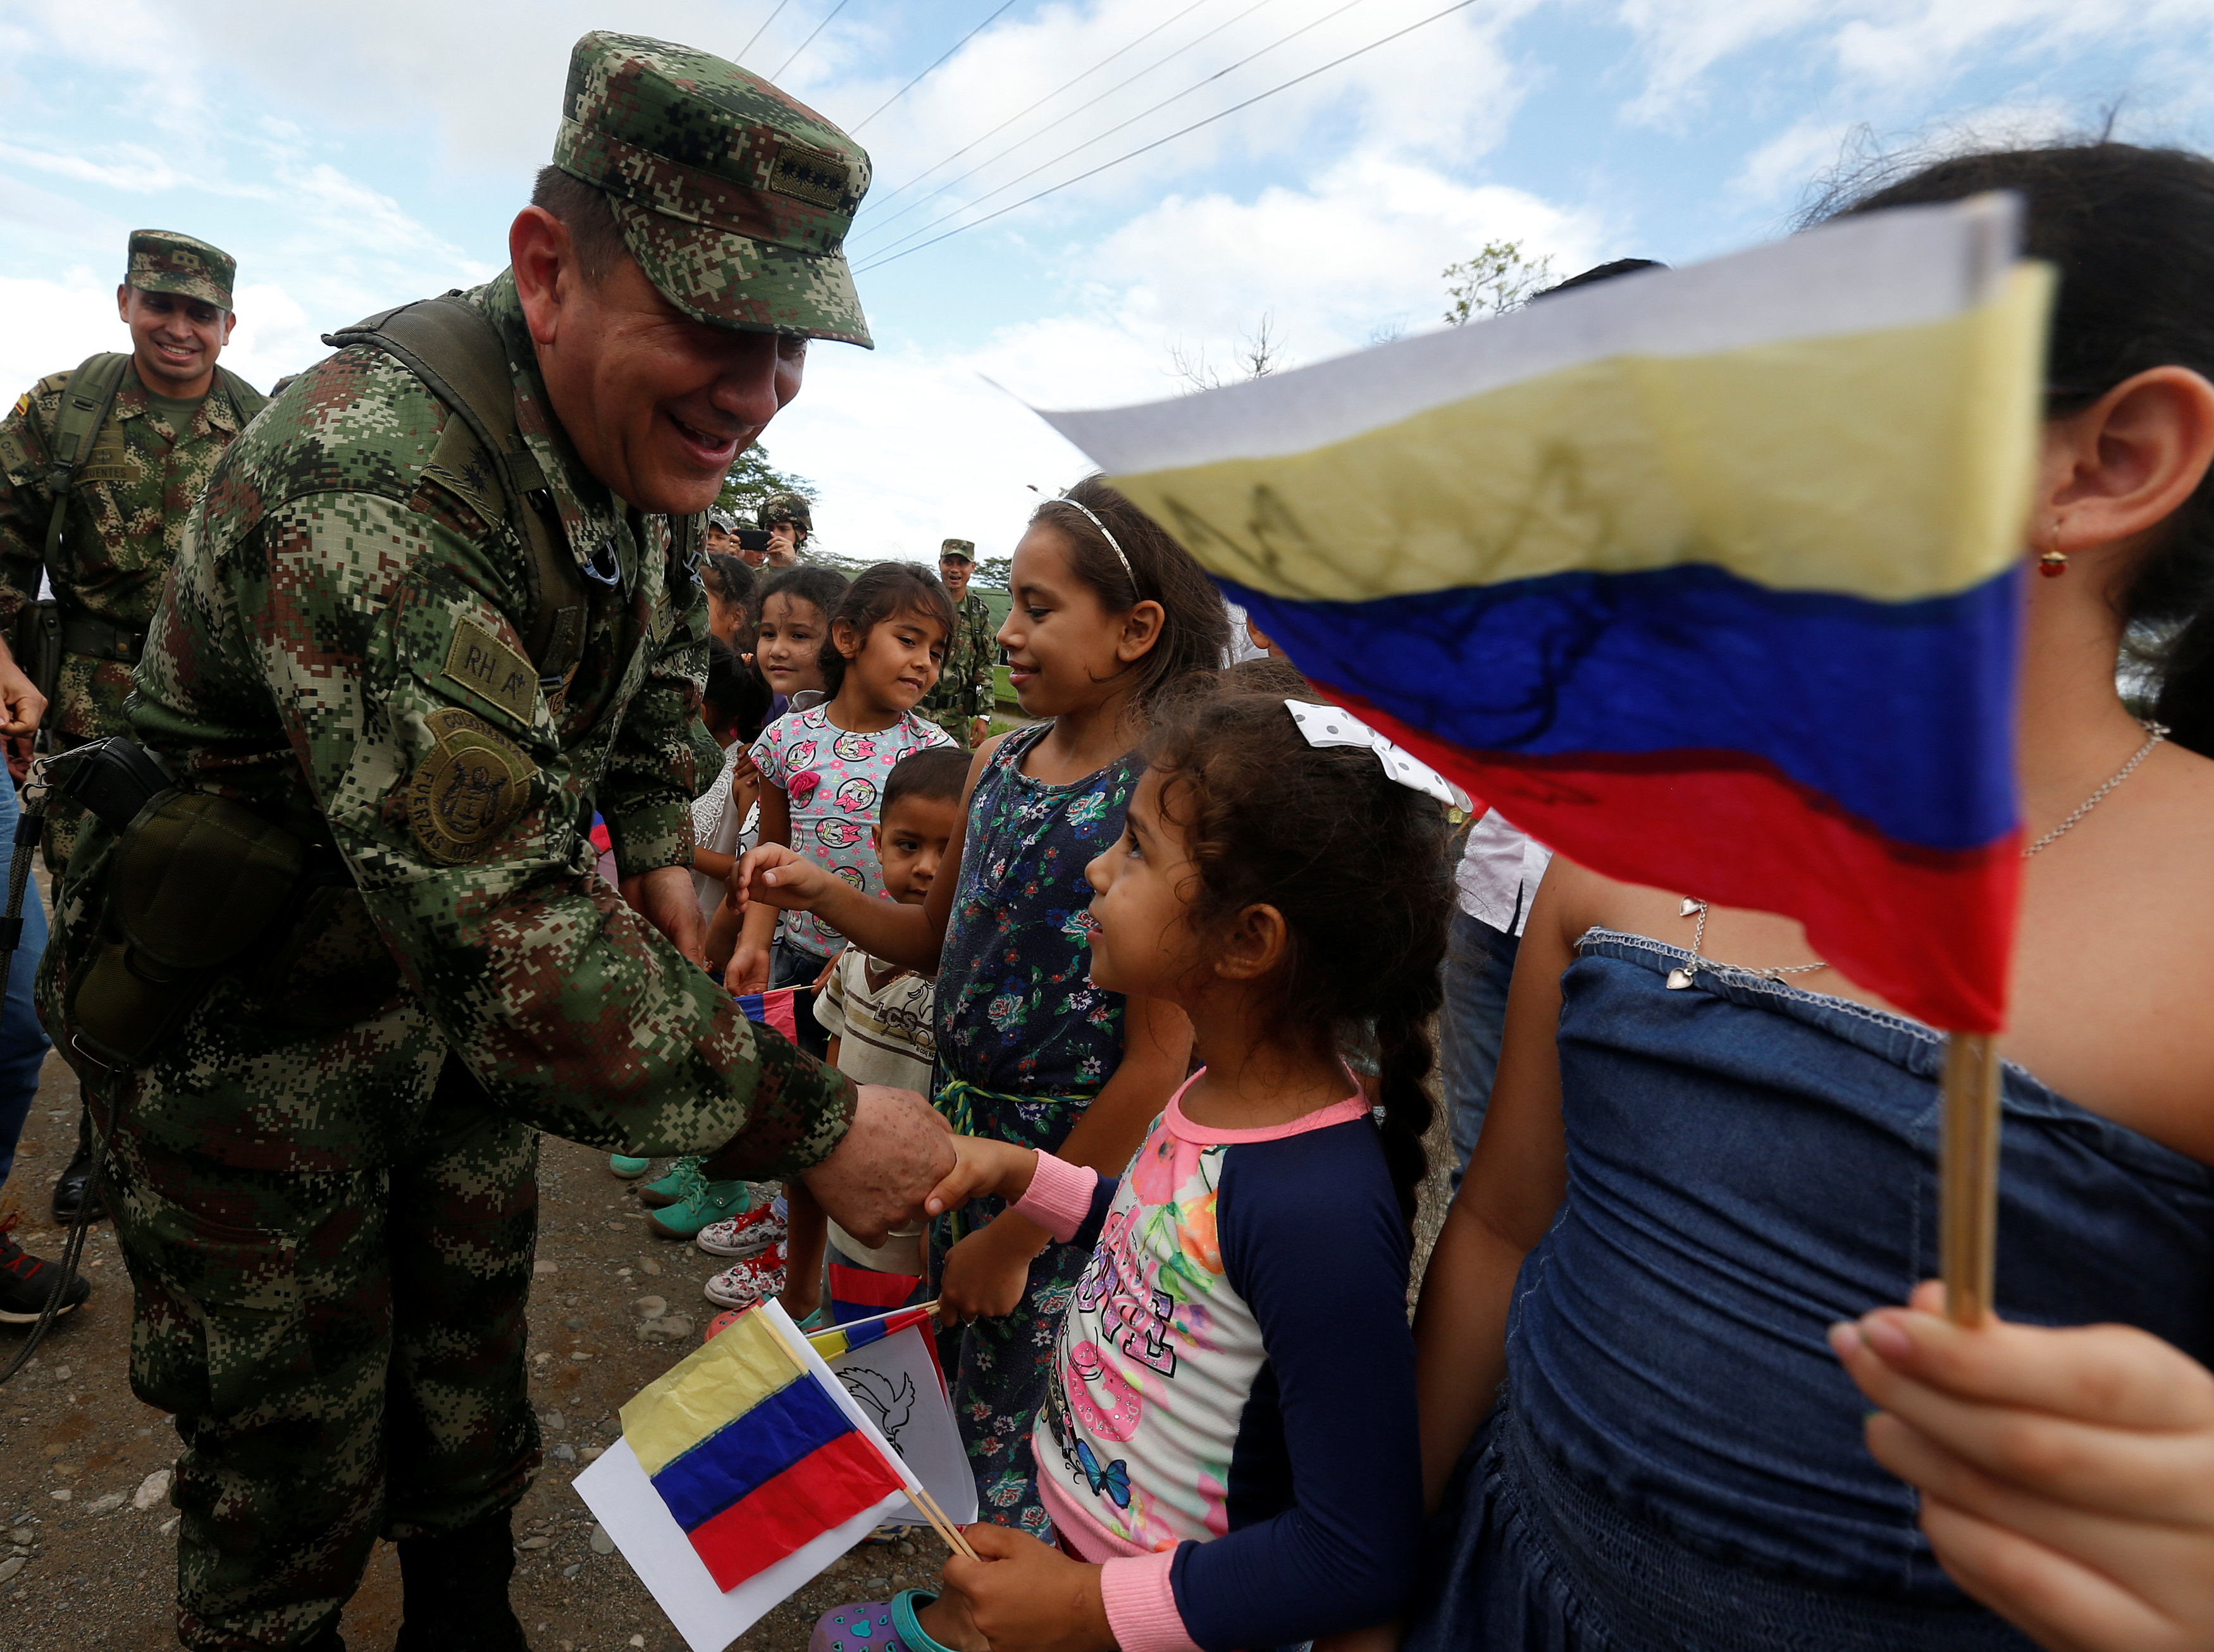 Juan Pablo Rodriguez, Commander of the Colombian Military Forces, greets children during the army's arrival to an area that was previously occupied by FARC rebels, in Meta, Colombia June 1, 2017. Picture taken June 1, 2017. REUTERS/Jaime Saldarriaga